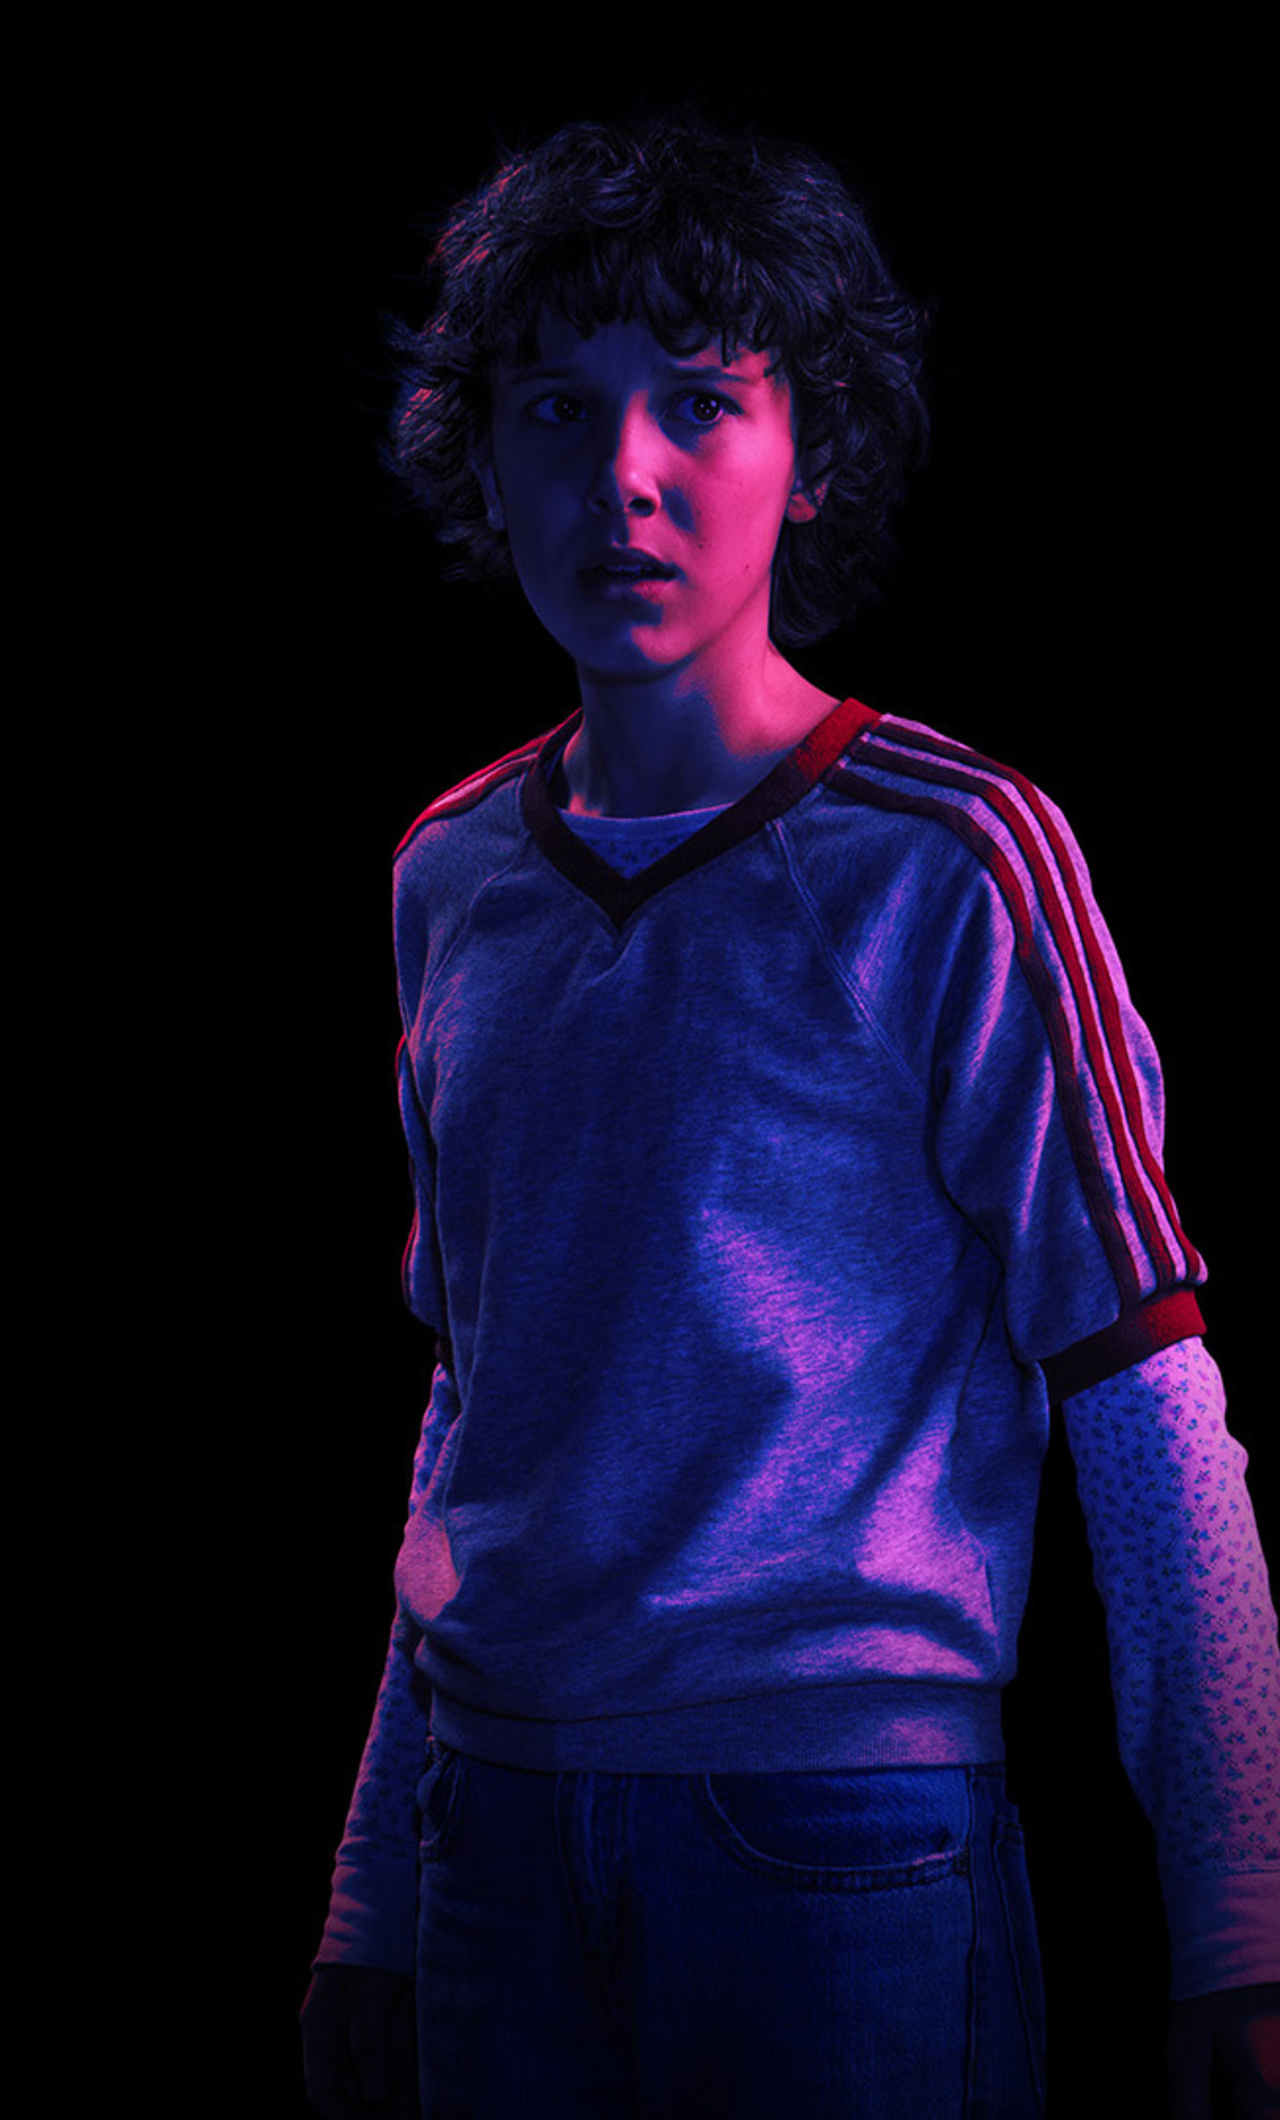 eleven-stranger-things-season-2-41.jpg